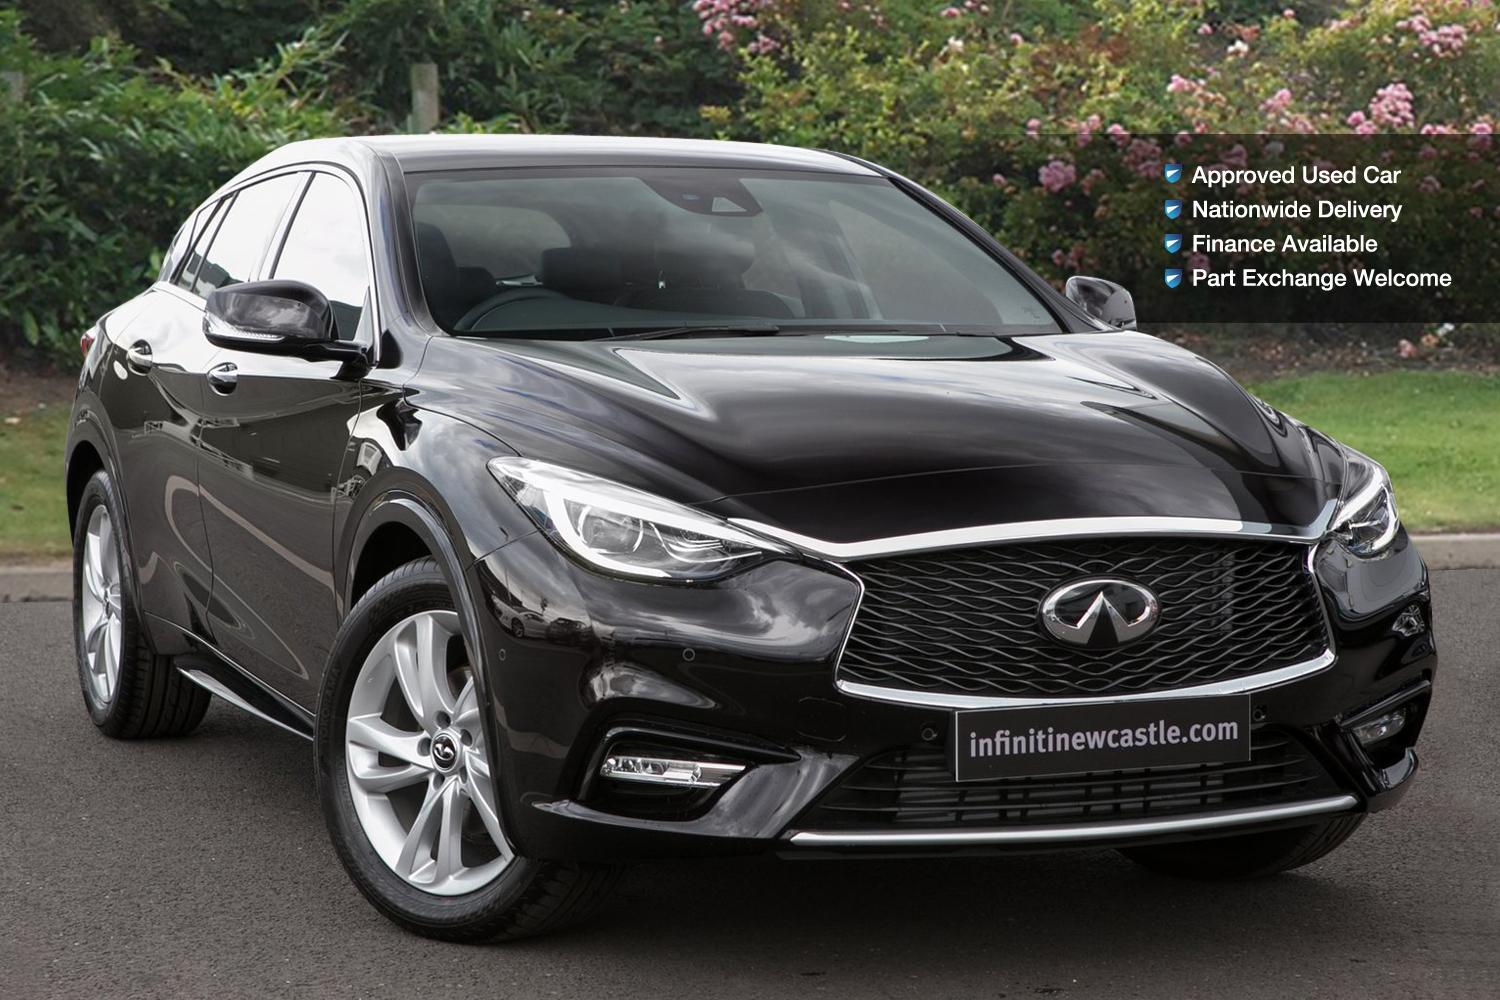 used infiniti q30 1 5d premium tech 5dr diesel hatchback for sale vertu toyota. Black Bedroom Furniture Sets. Home Design Ideas